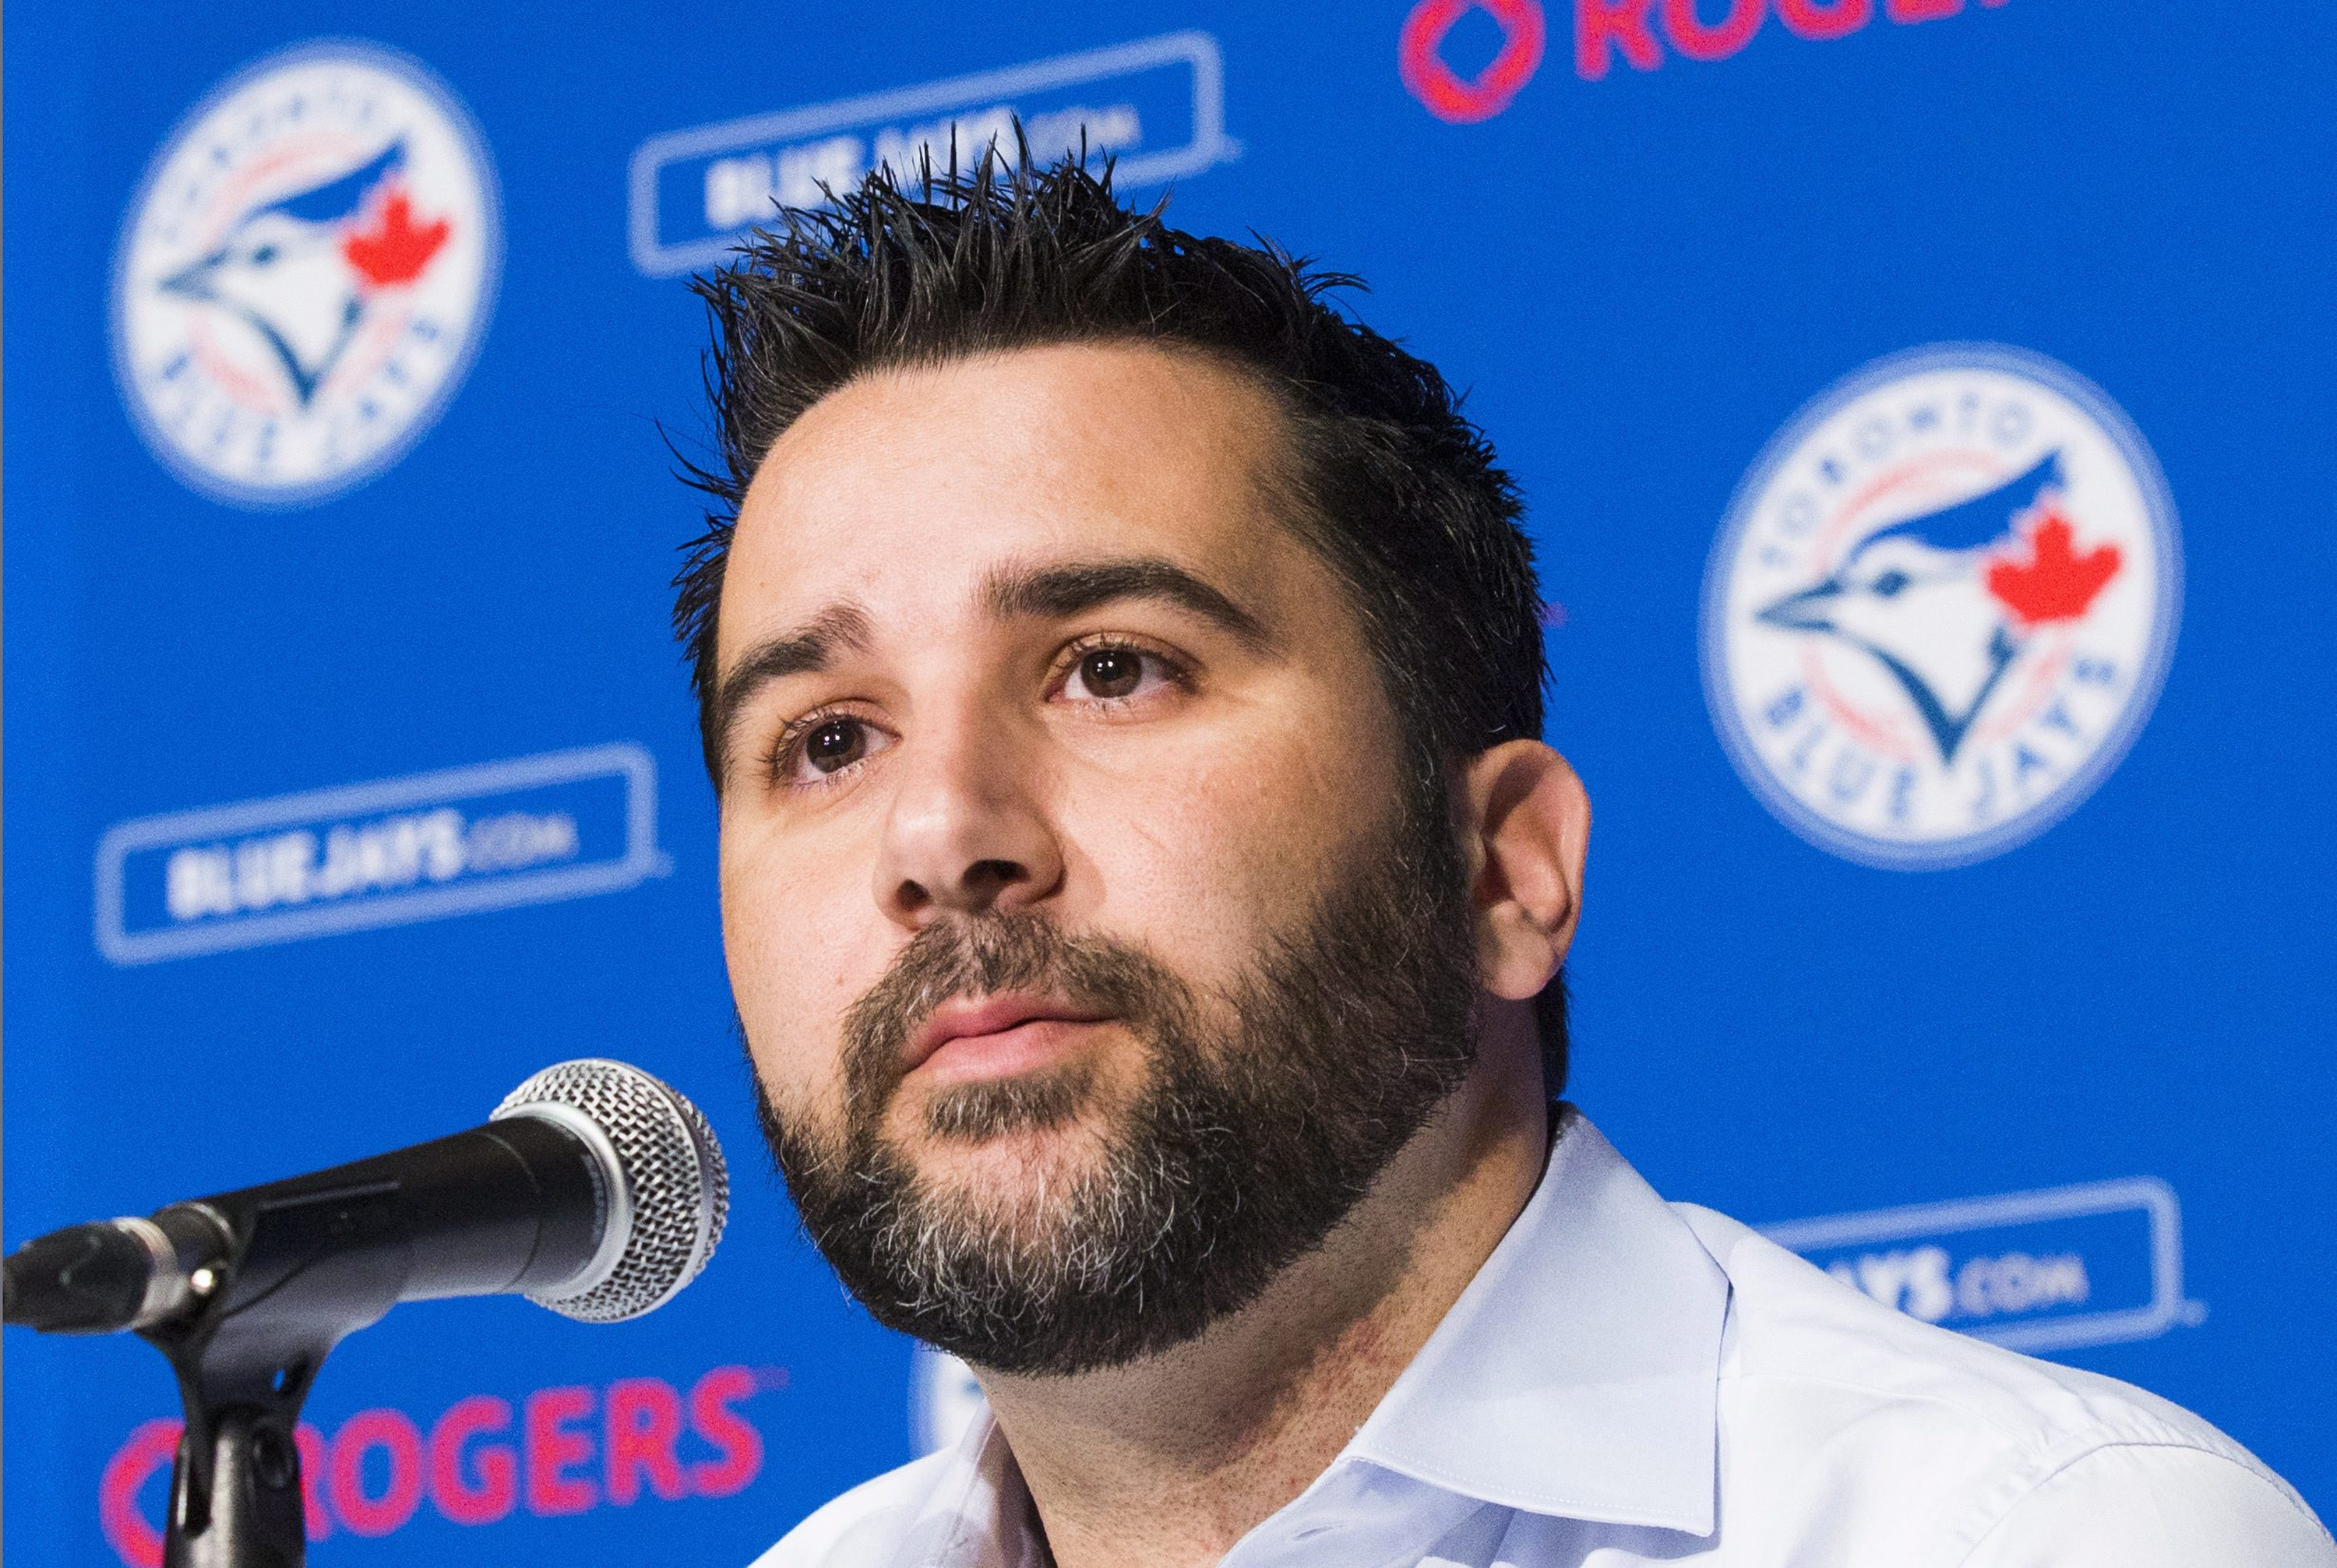 FILE - In this July 28, 2015, file photo, Toronto Blue Jays general manager Alex Anthopoulos speaks at a press conference in Toronto. The Los Angeles Dodgers on Tuesday, Jan. 12,  announced the hiring of Anthopoulos as Vice President, Baseball Operations.